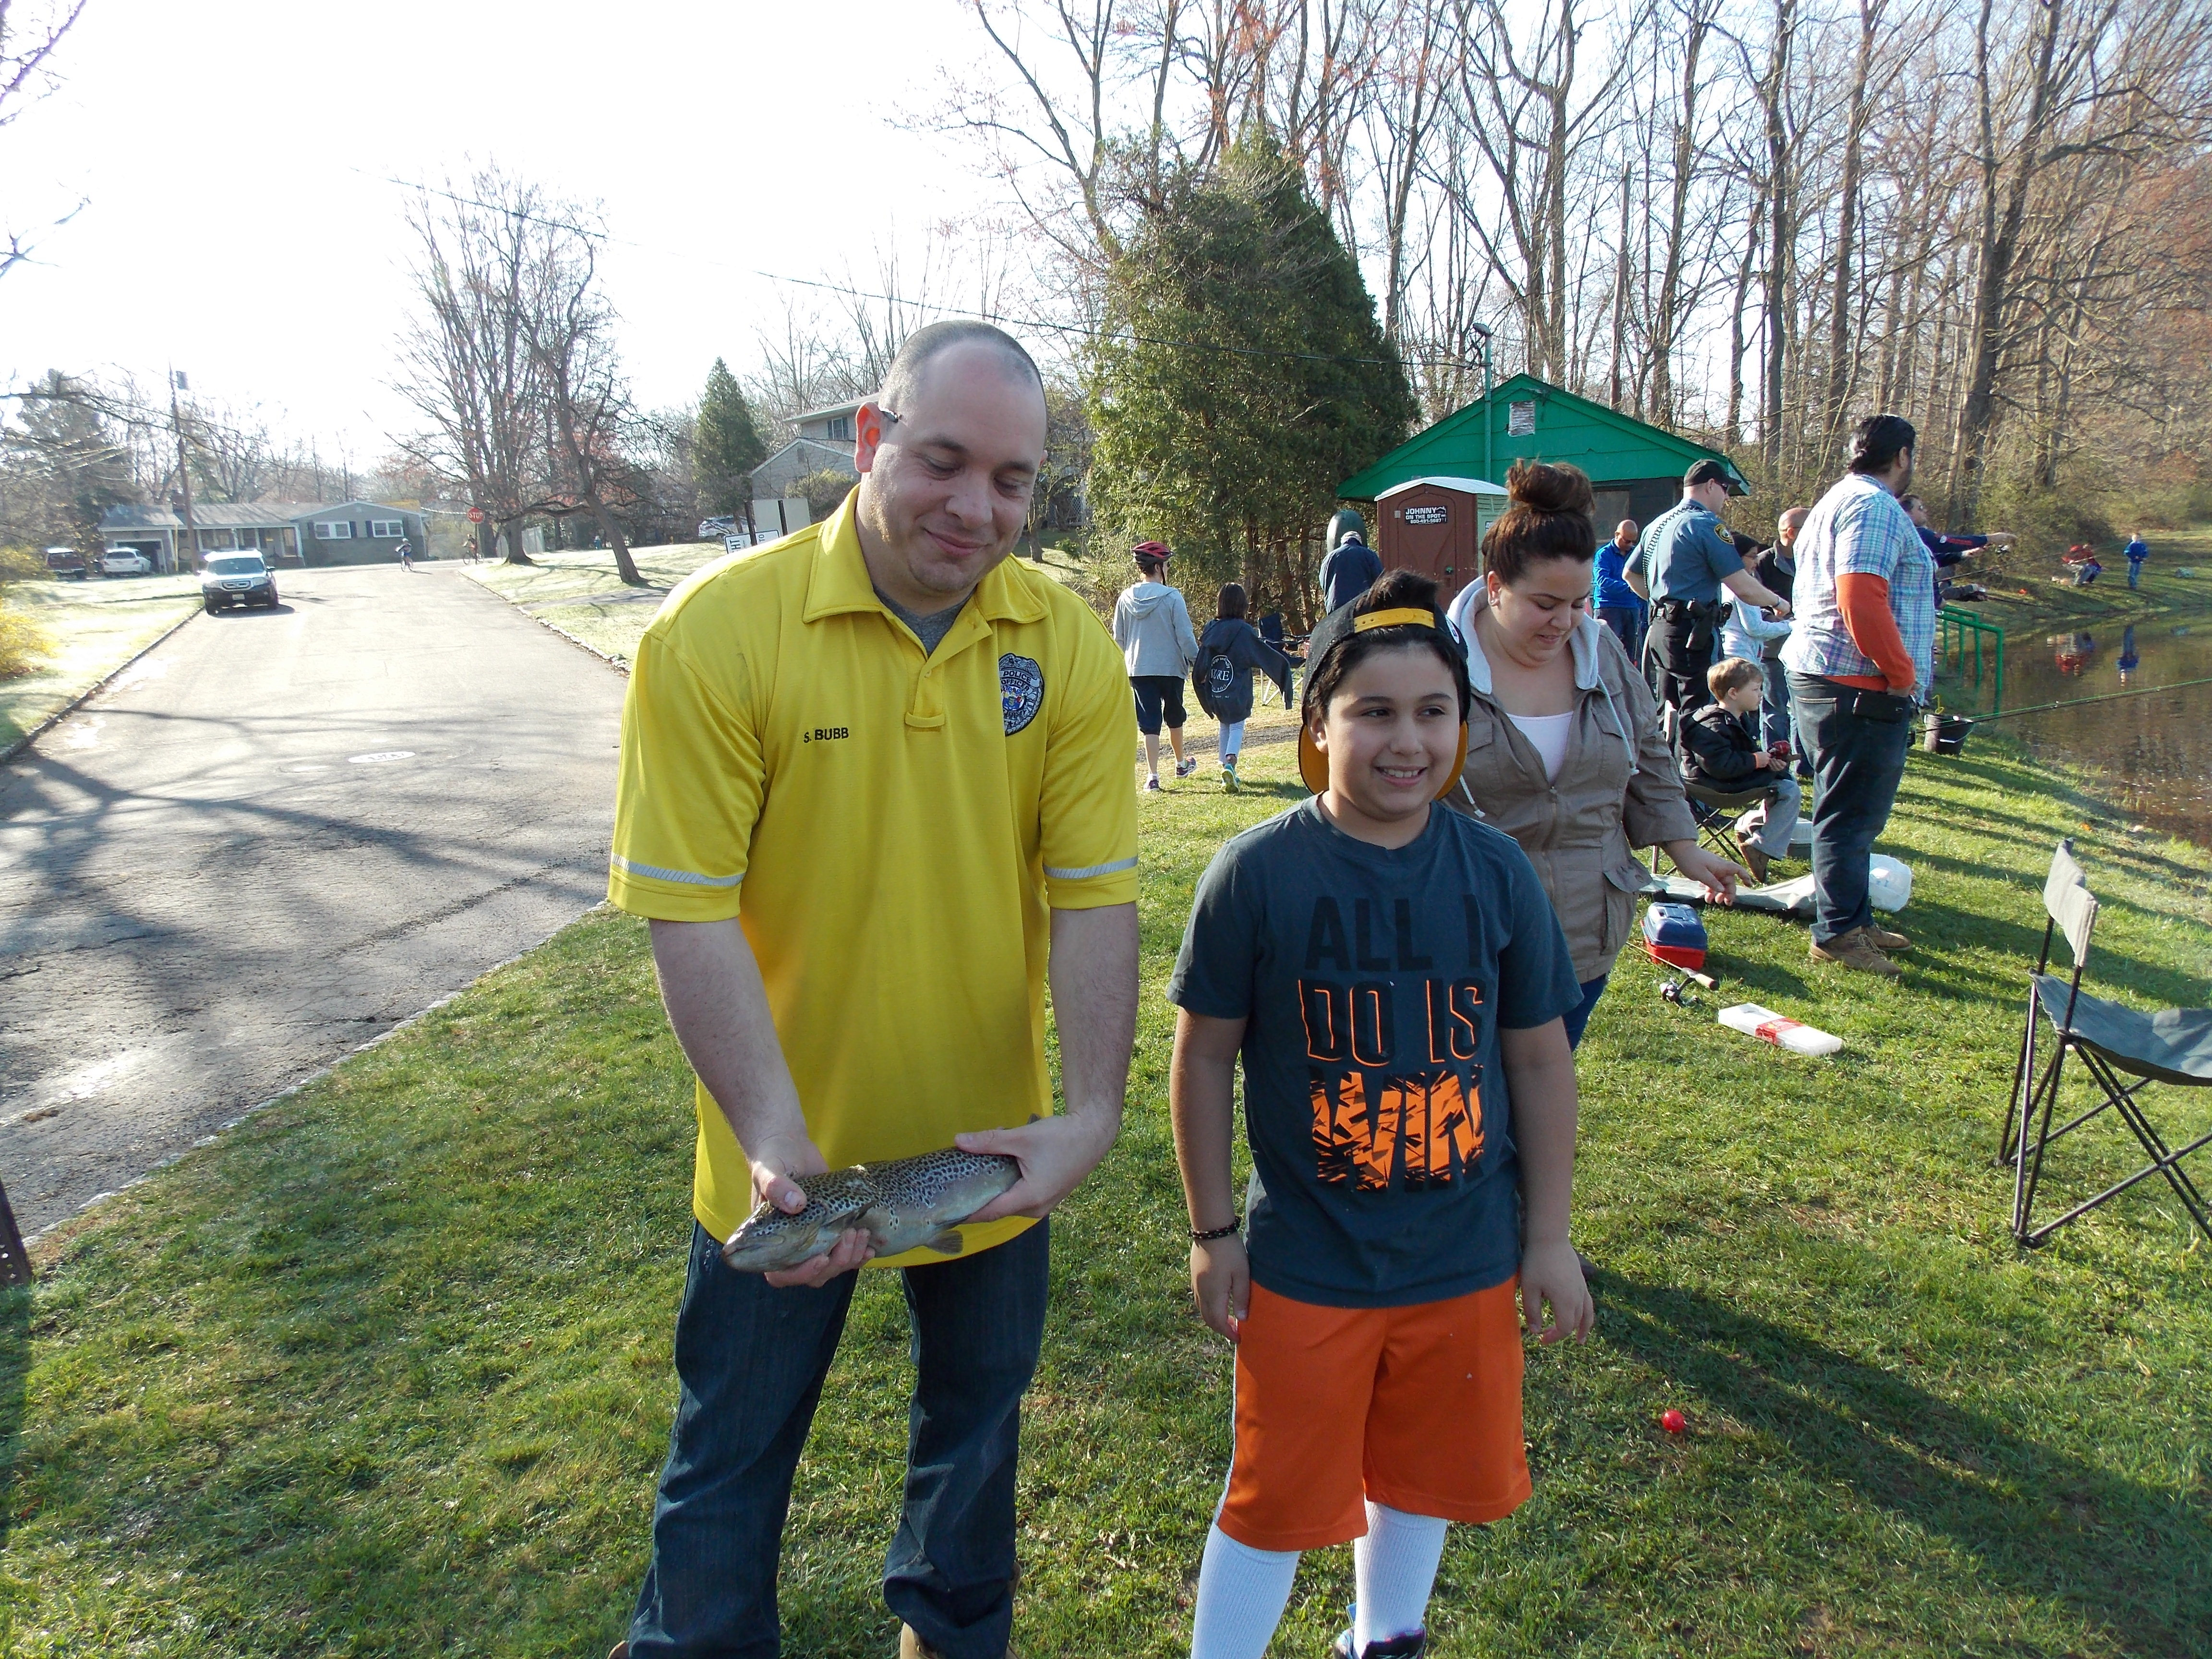 35th Annual New Providence Fishing Derby Brings Community Together